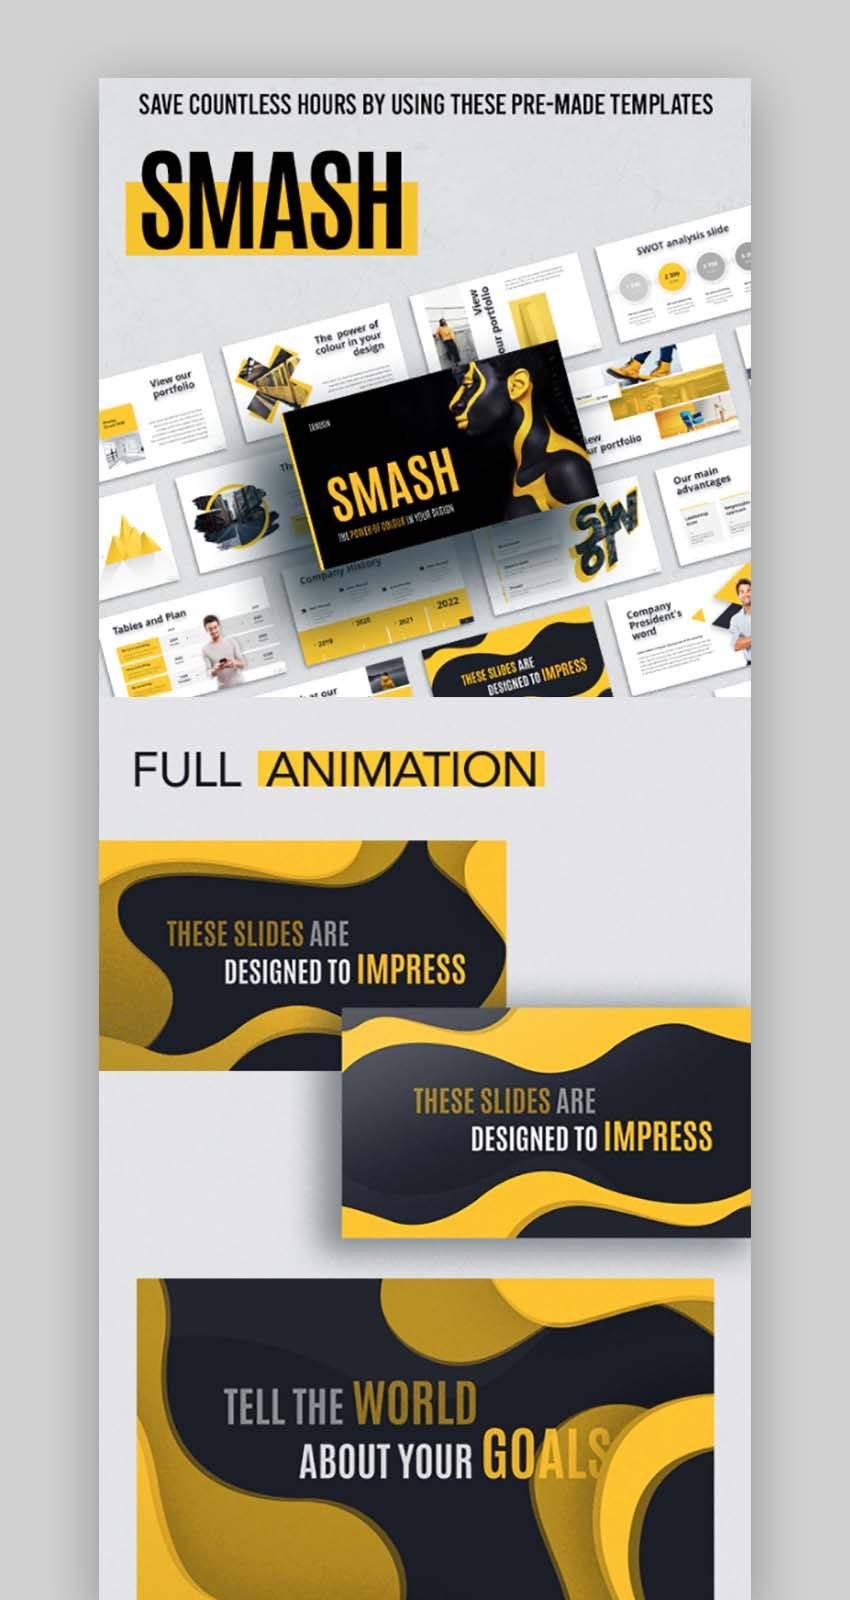 Smash Animated Keynote Effects Template